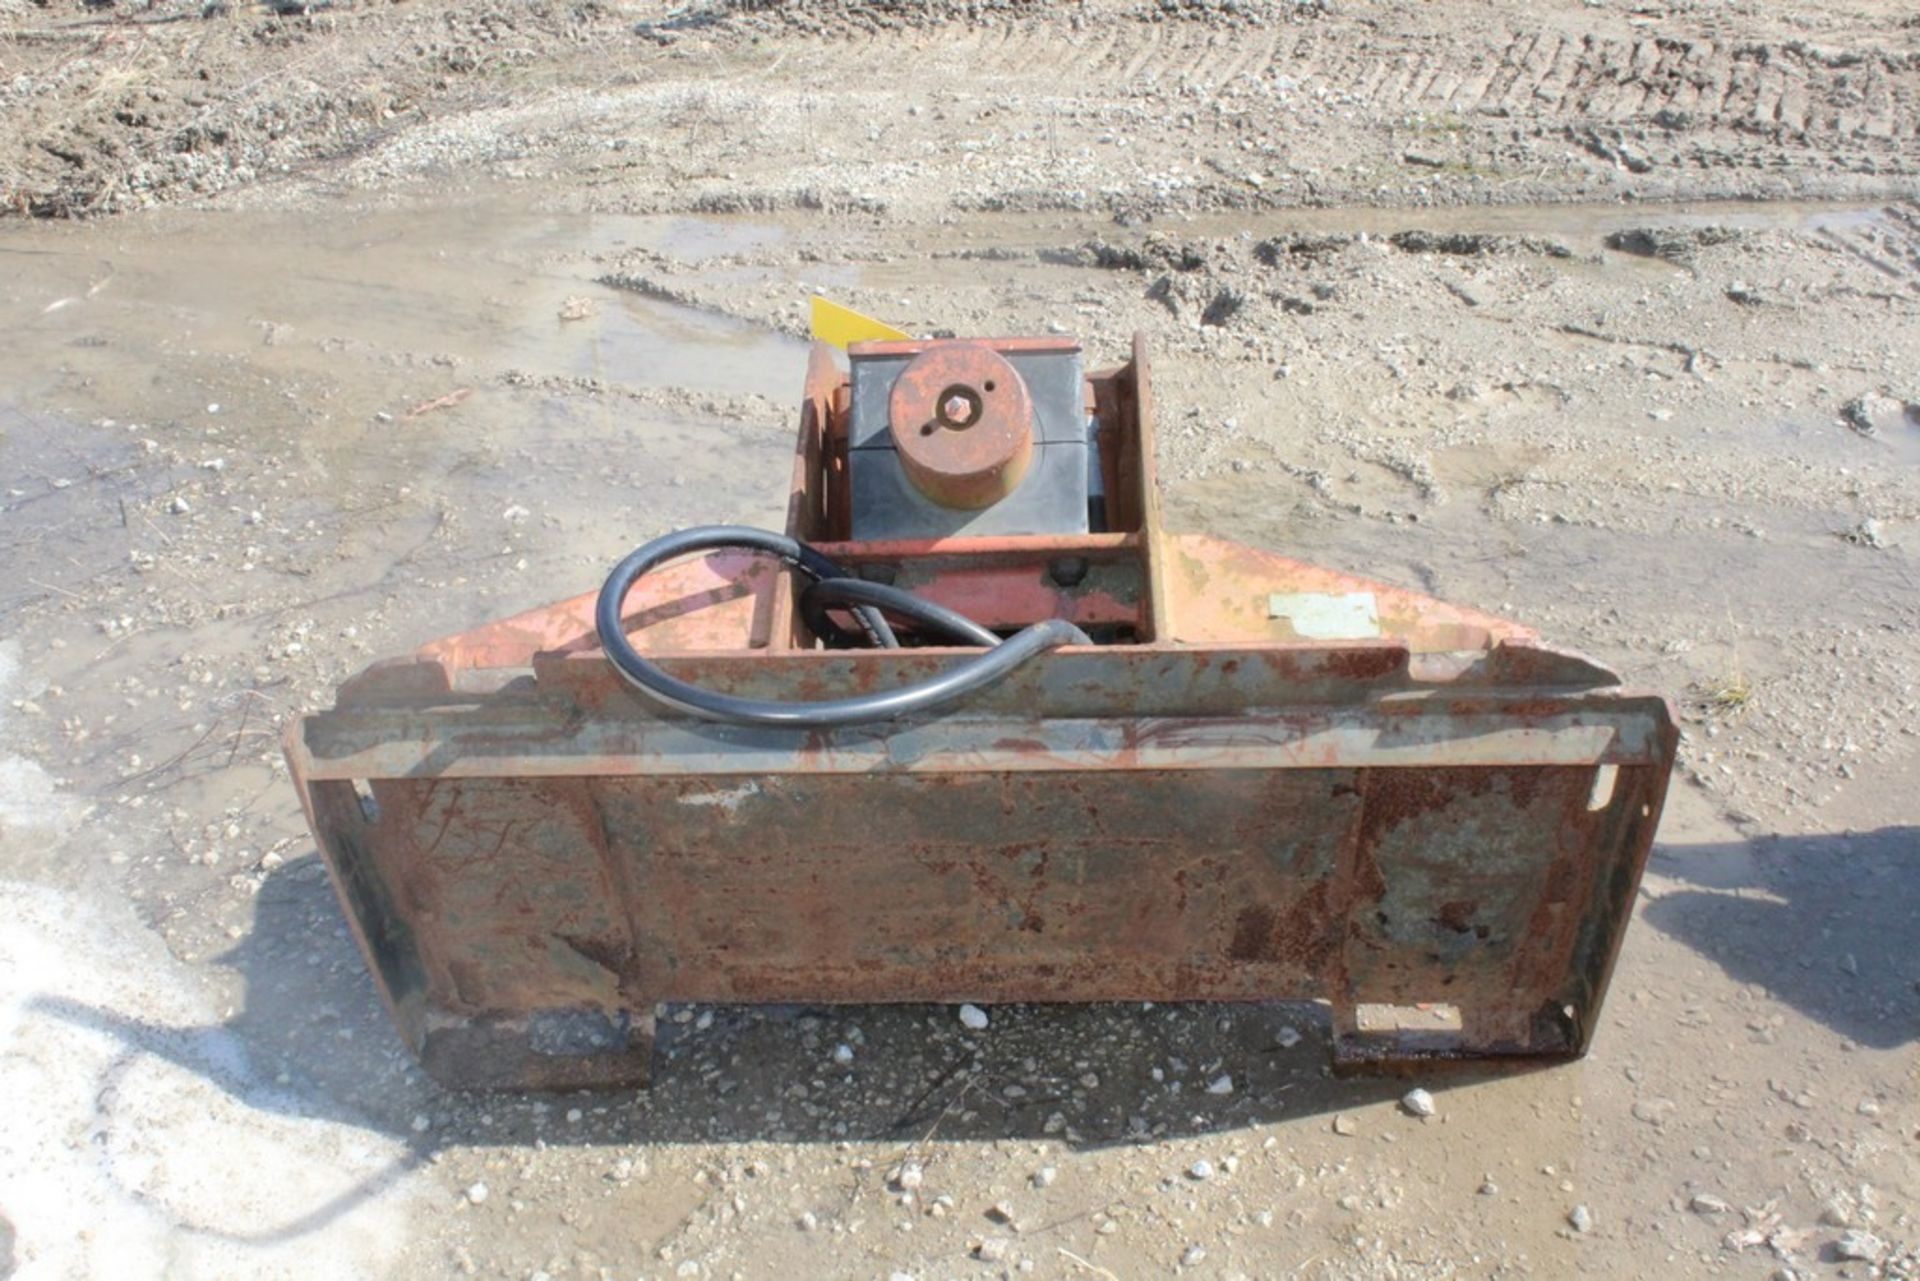 CONTECH H-220 HYDRAULIC BREAKER ATTACHMENT S/N: 86010, BIT, TO FIT SKID STEER LOADER - Image 4 of 4